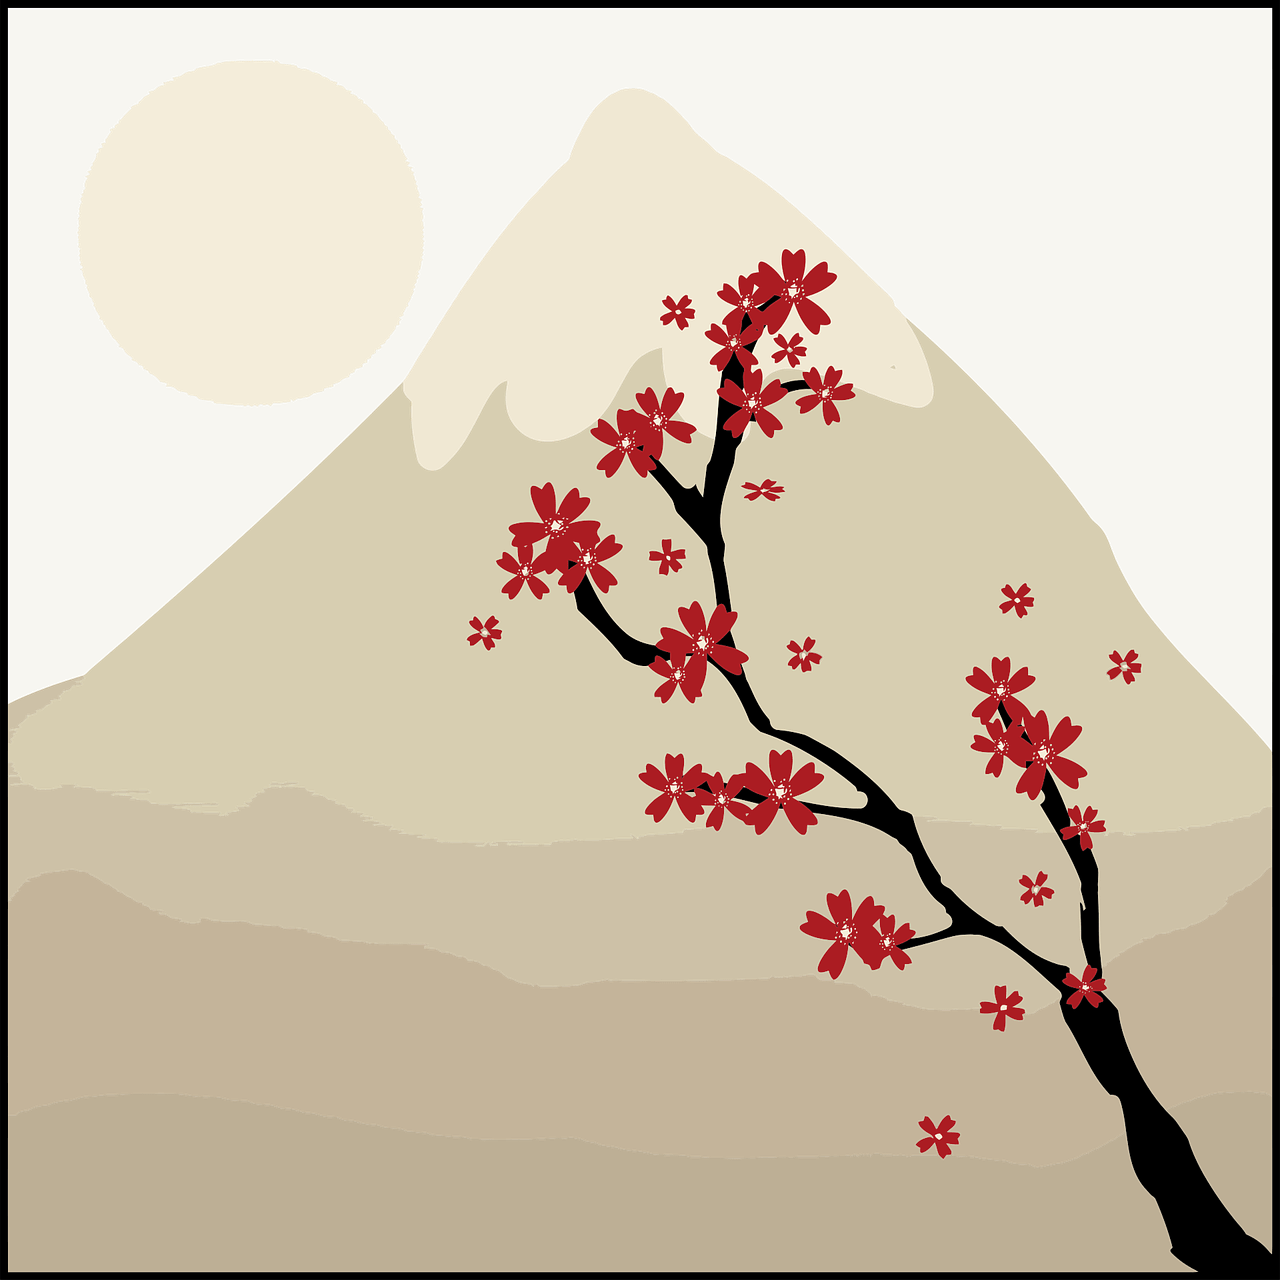 Japanese art drawing of a mountain, moon and a cherry tree branch